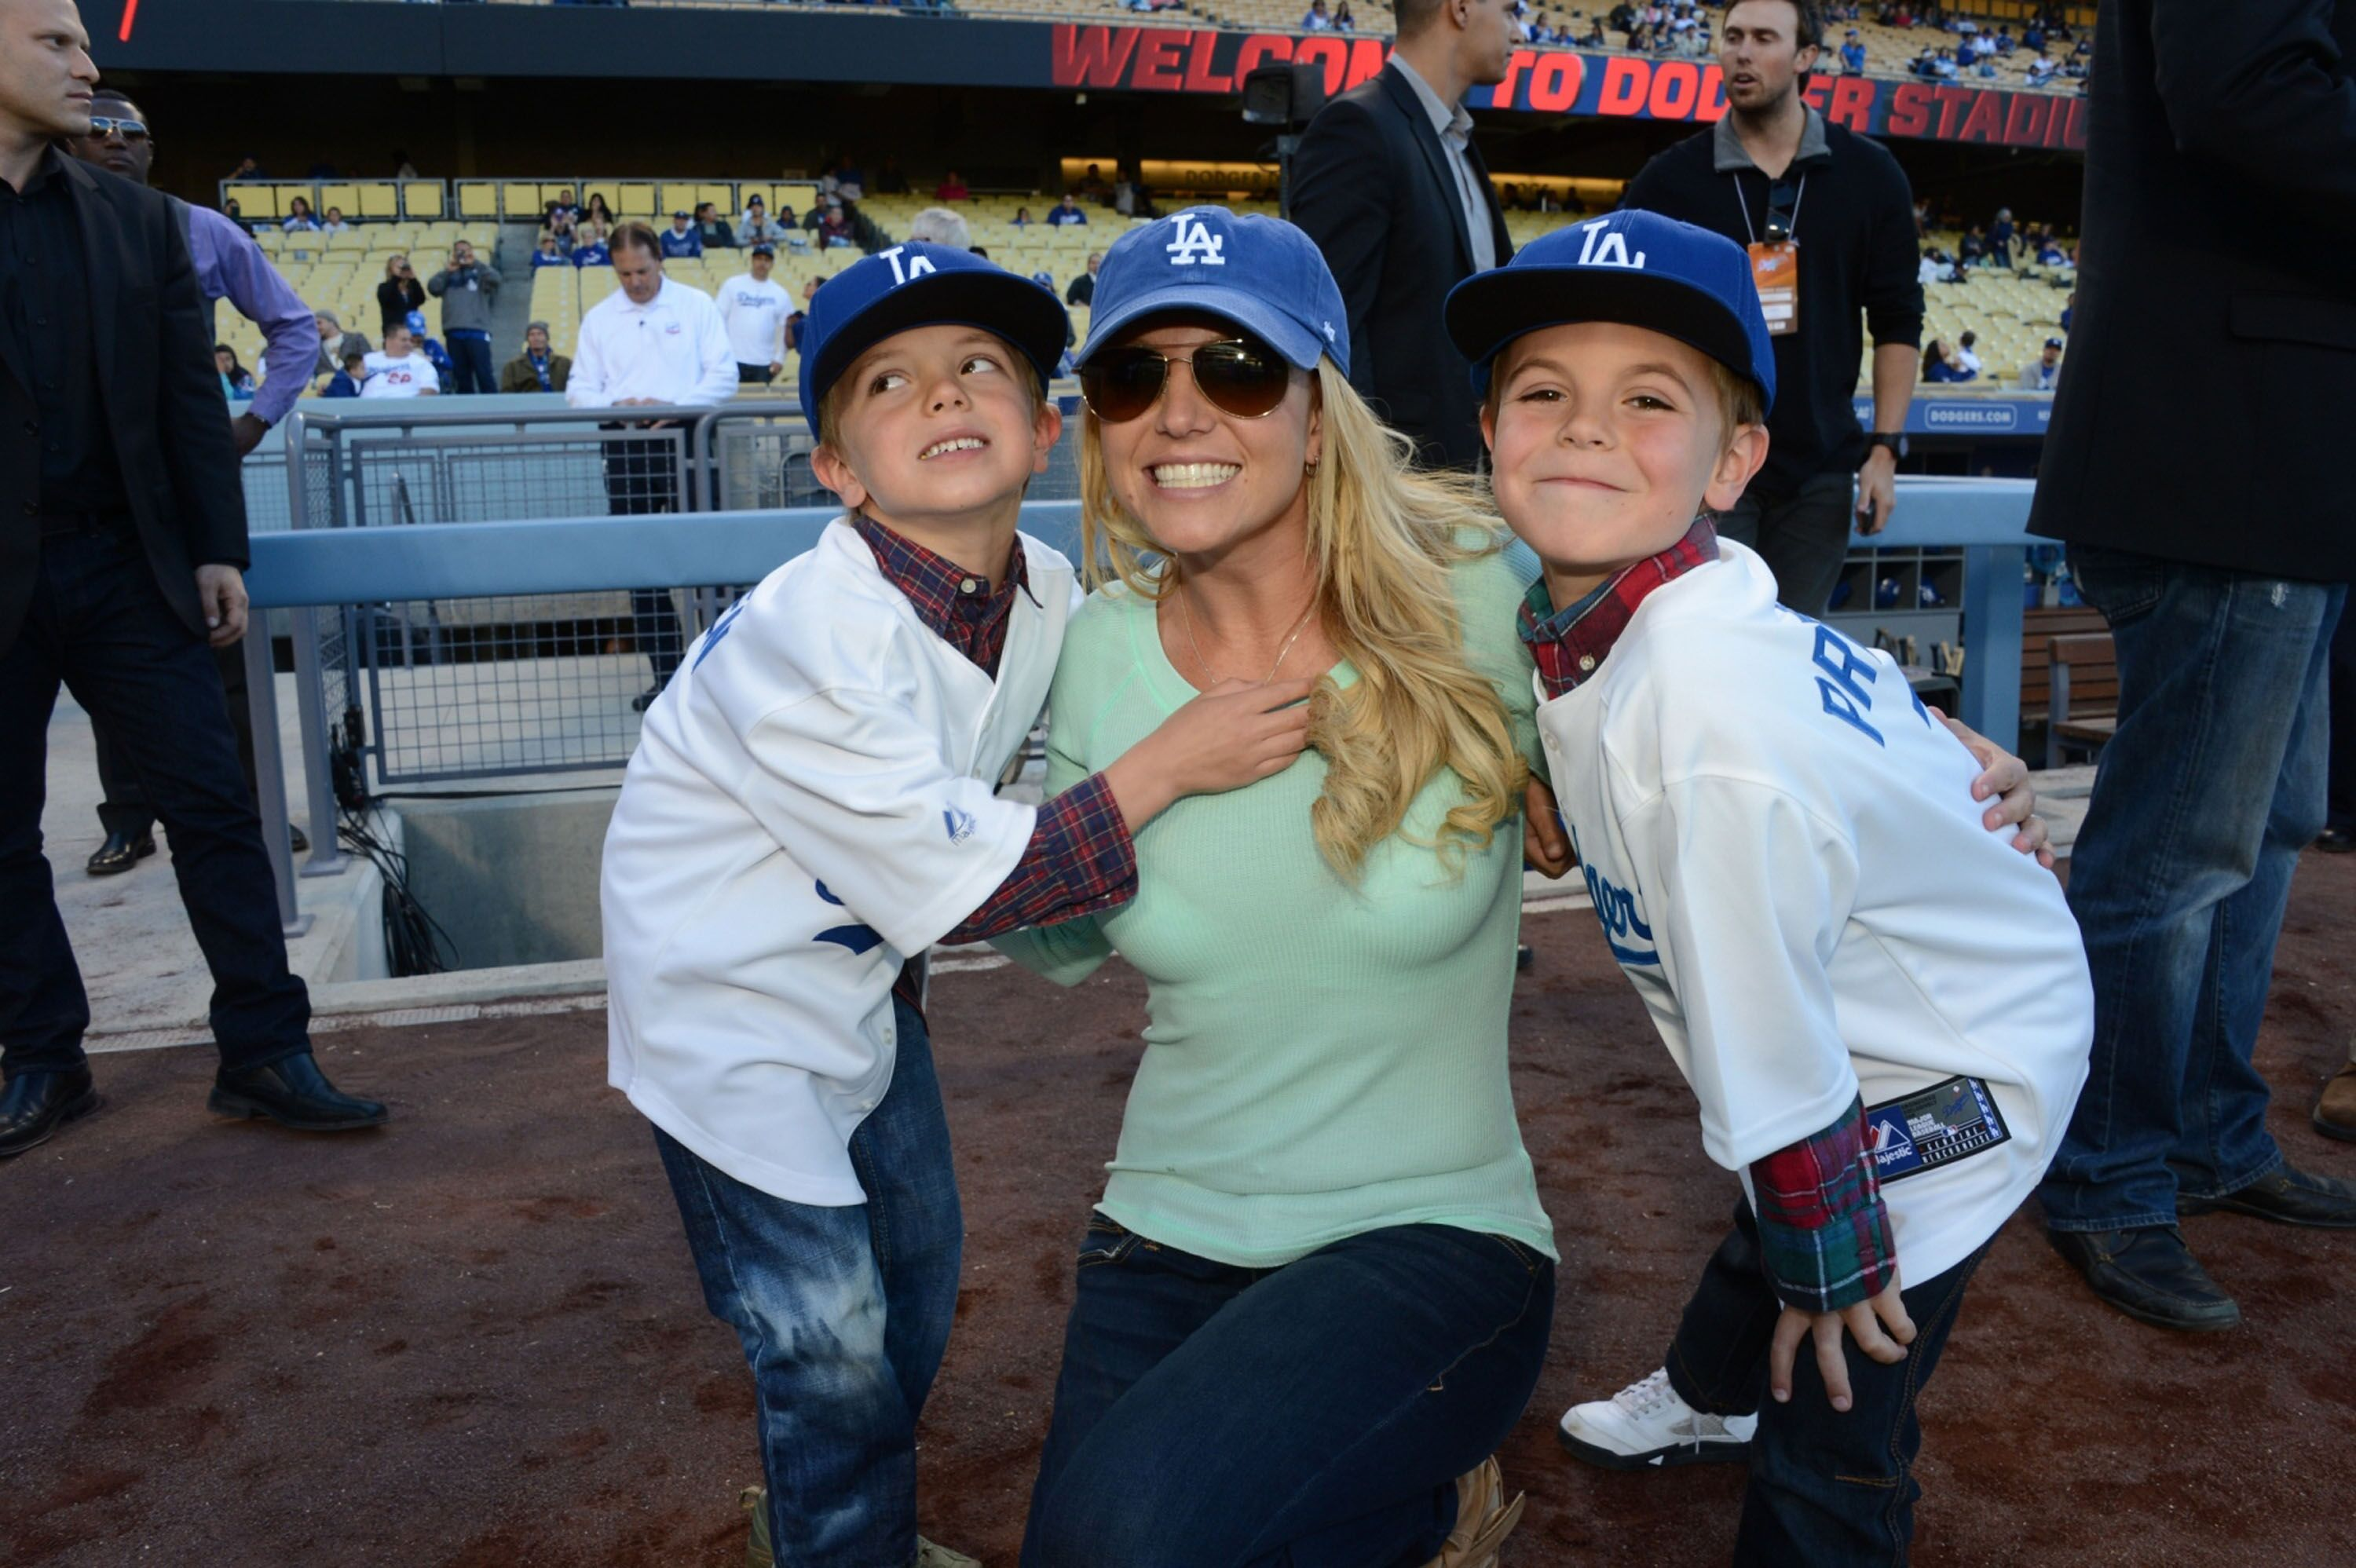 Britney Spearswith sons Jayden and Sean Preston Federline in Los Angeles in 2013 | Photo: Getty Images